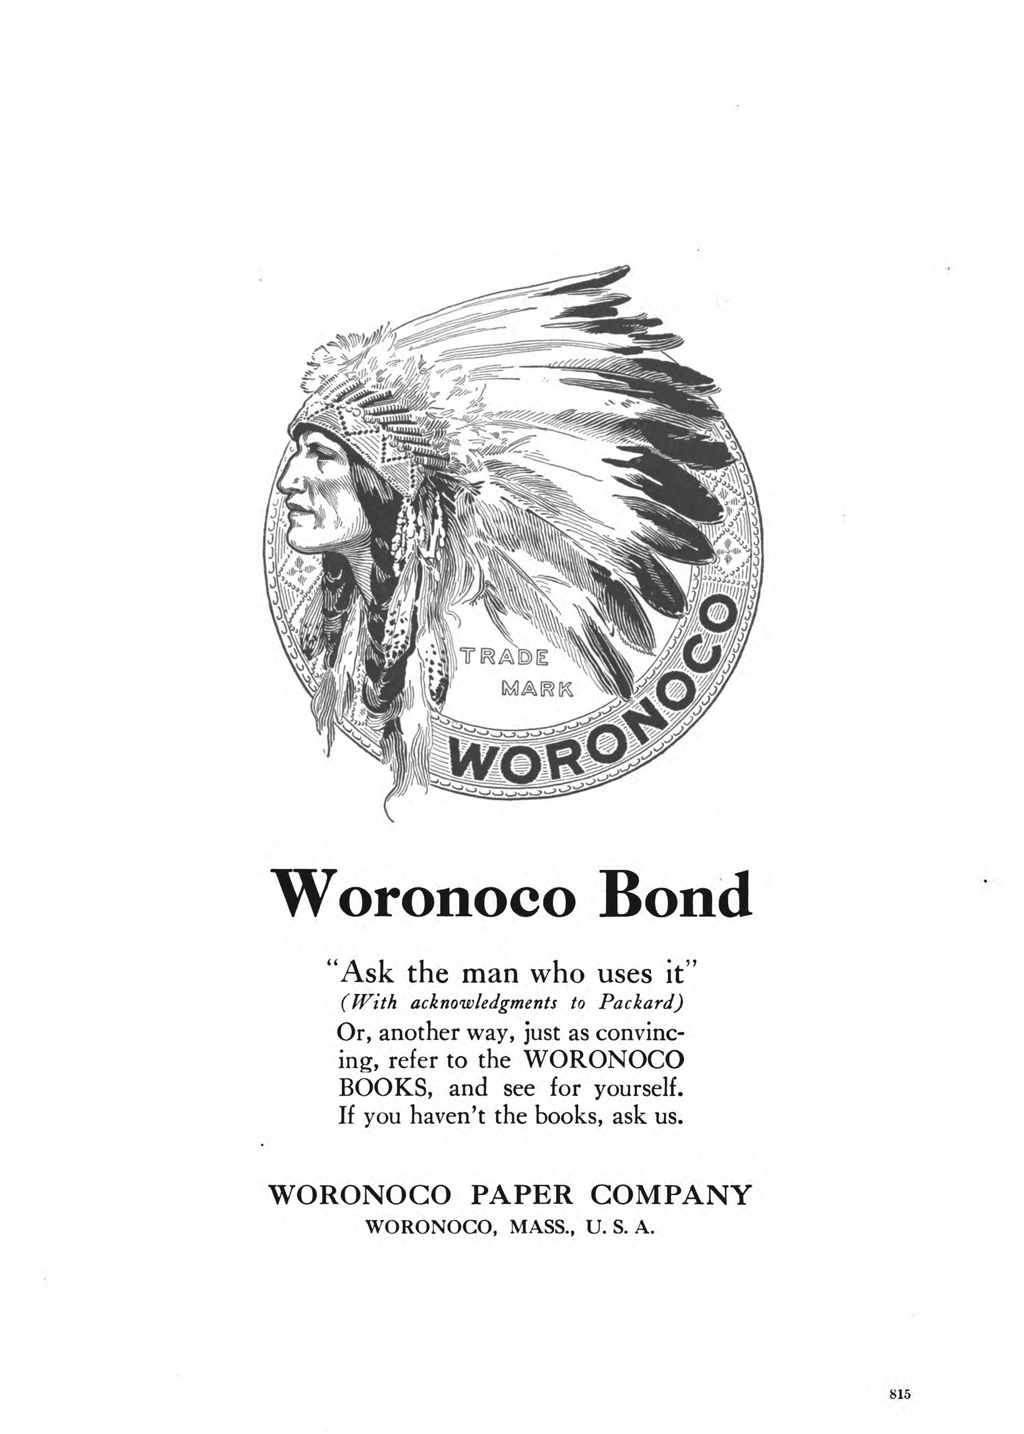 Woronoco Bond advertisement in The Inland Printer vol 45, no. 6 (September 1910).